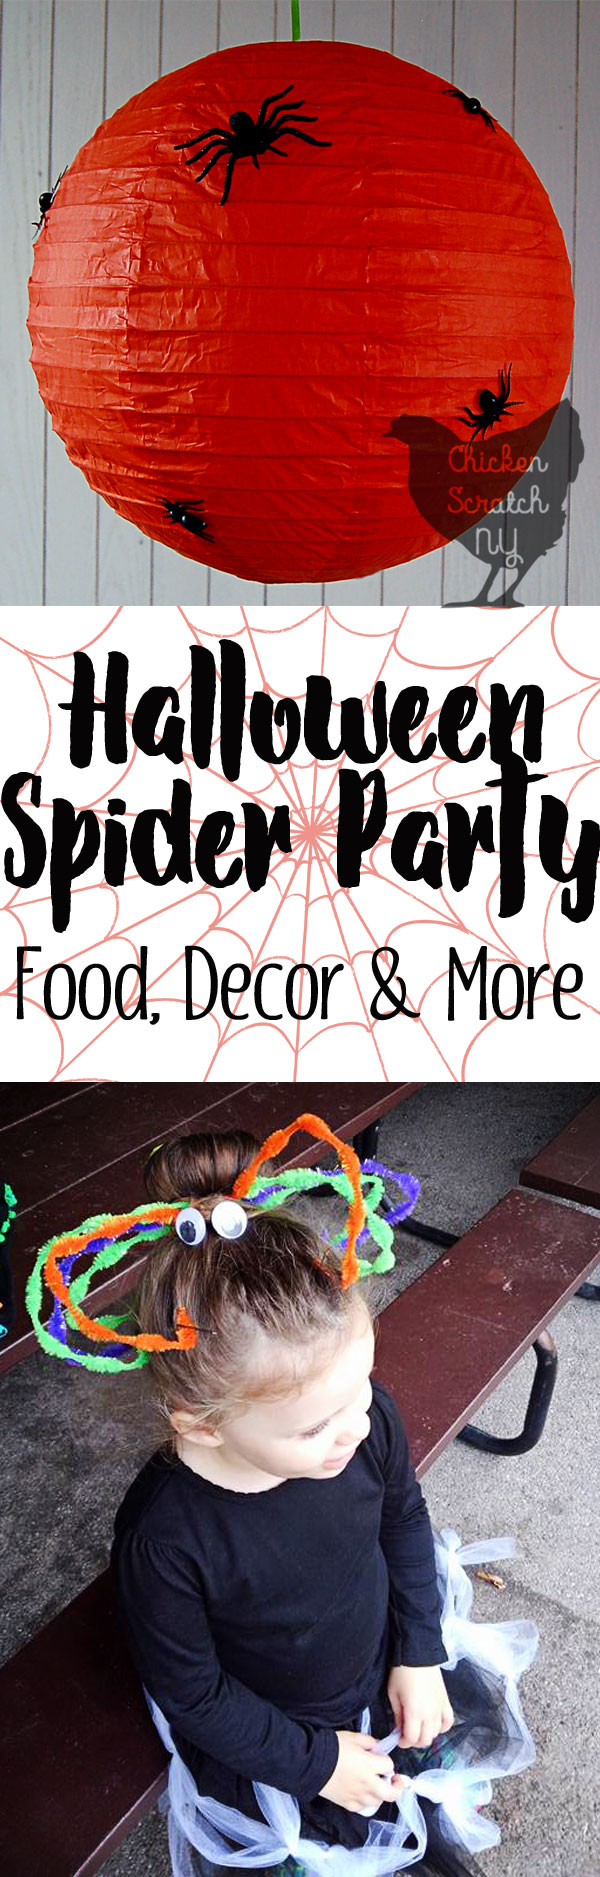 halloween party, spider party, outdoor party, park party, halloween decorations, halloween food